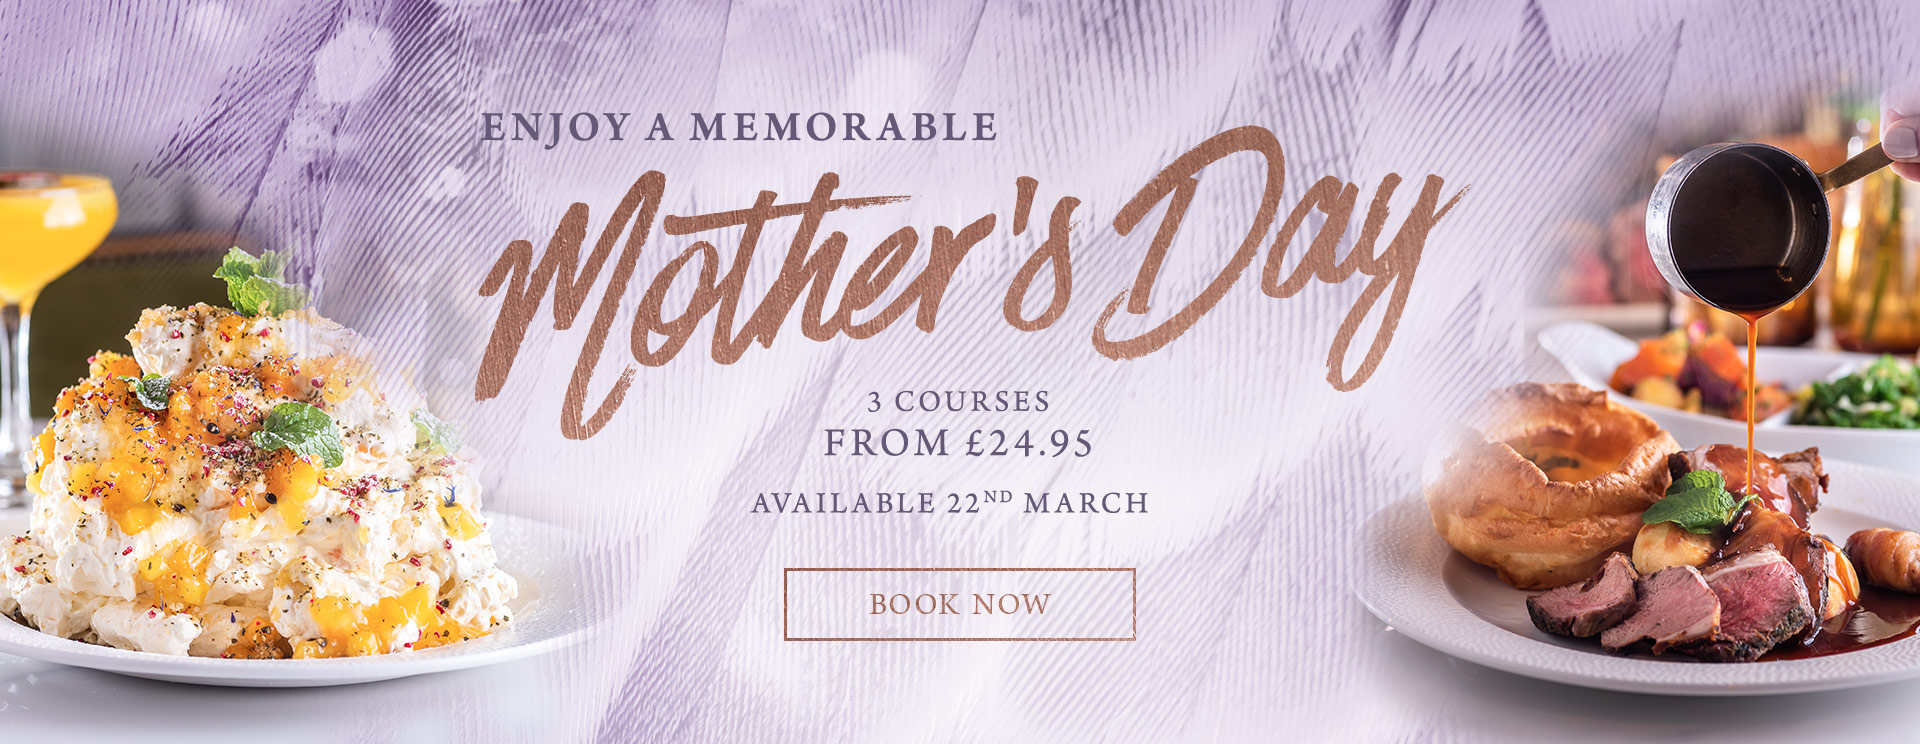 Mother's Day 2019 at The Horse & Groom